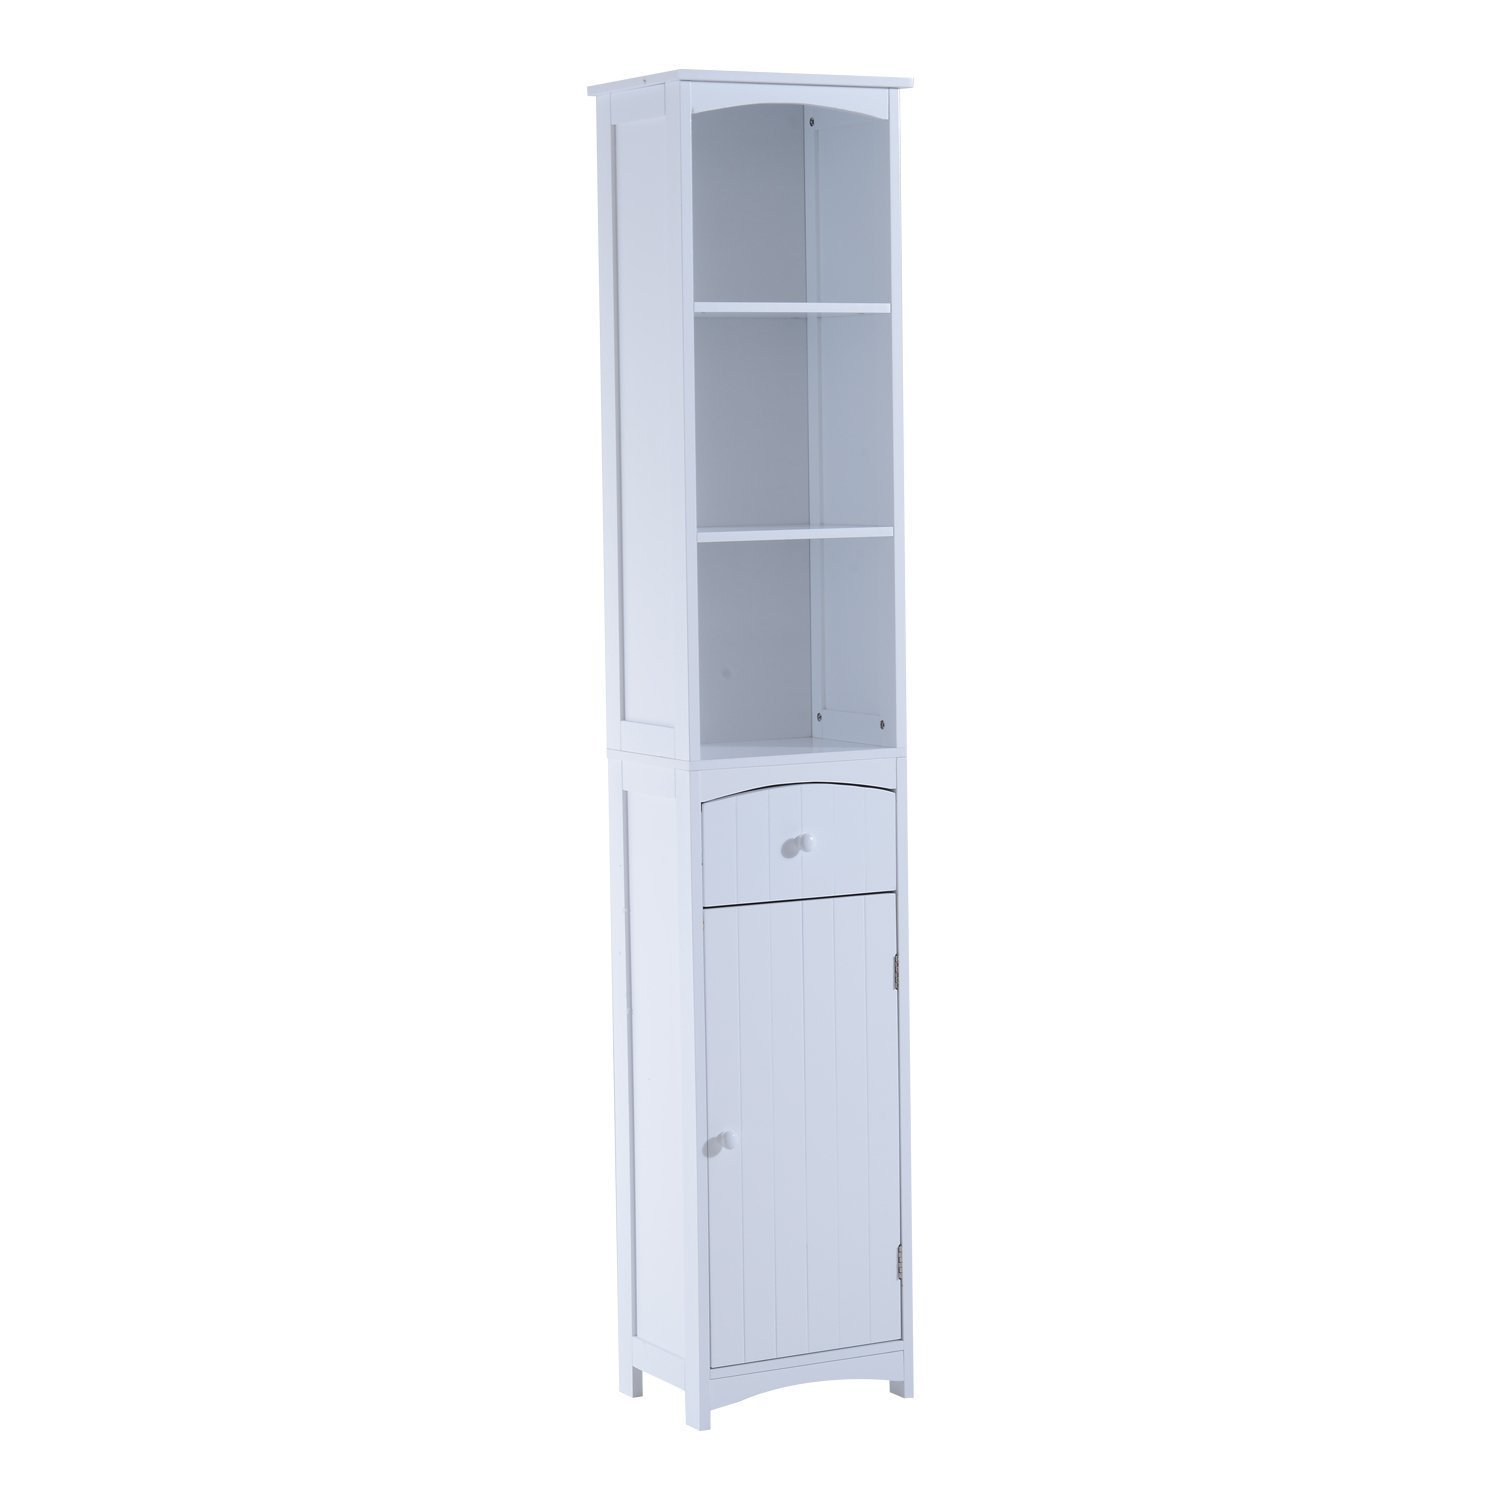 HOMCOM 67'' Free Standing Bathroom Tower Storage Cabinet Space Saving Floor Organizer Rack by HOMCOM